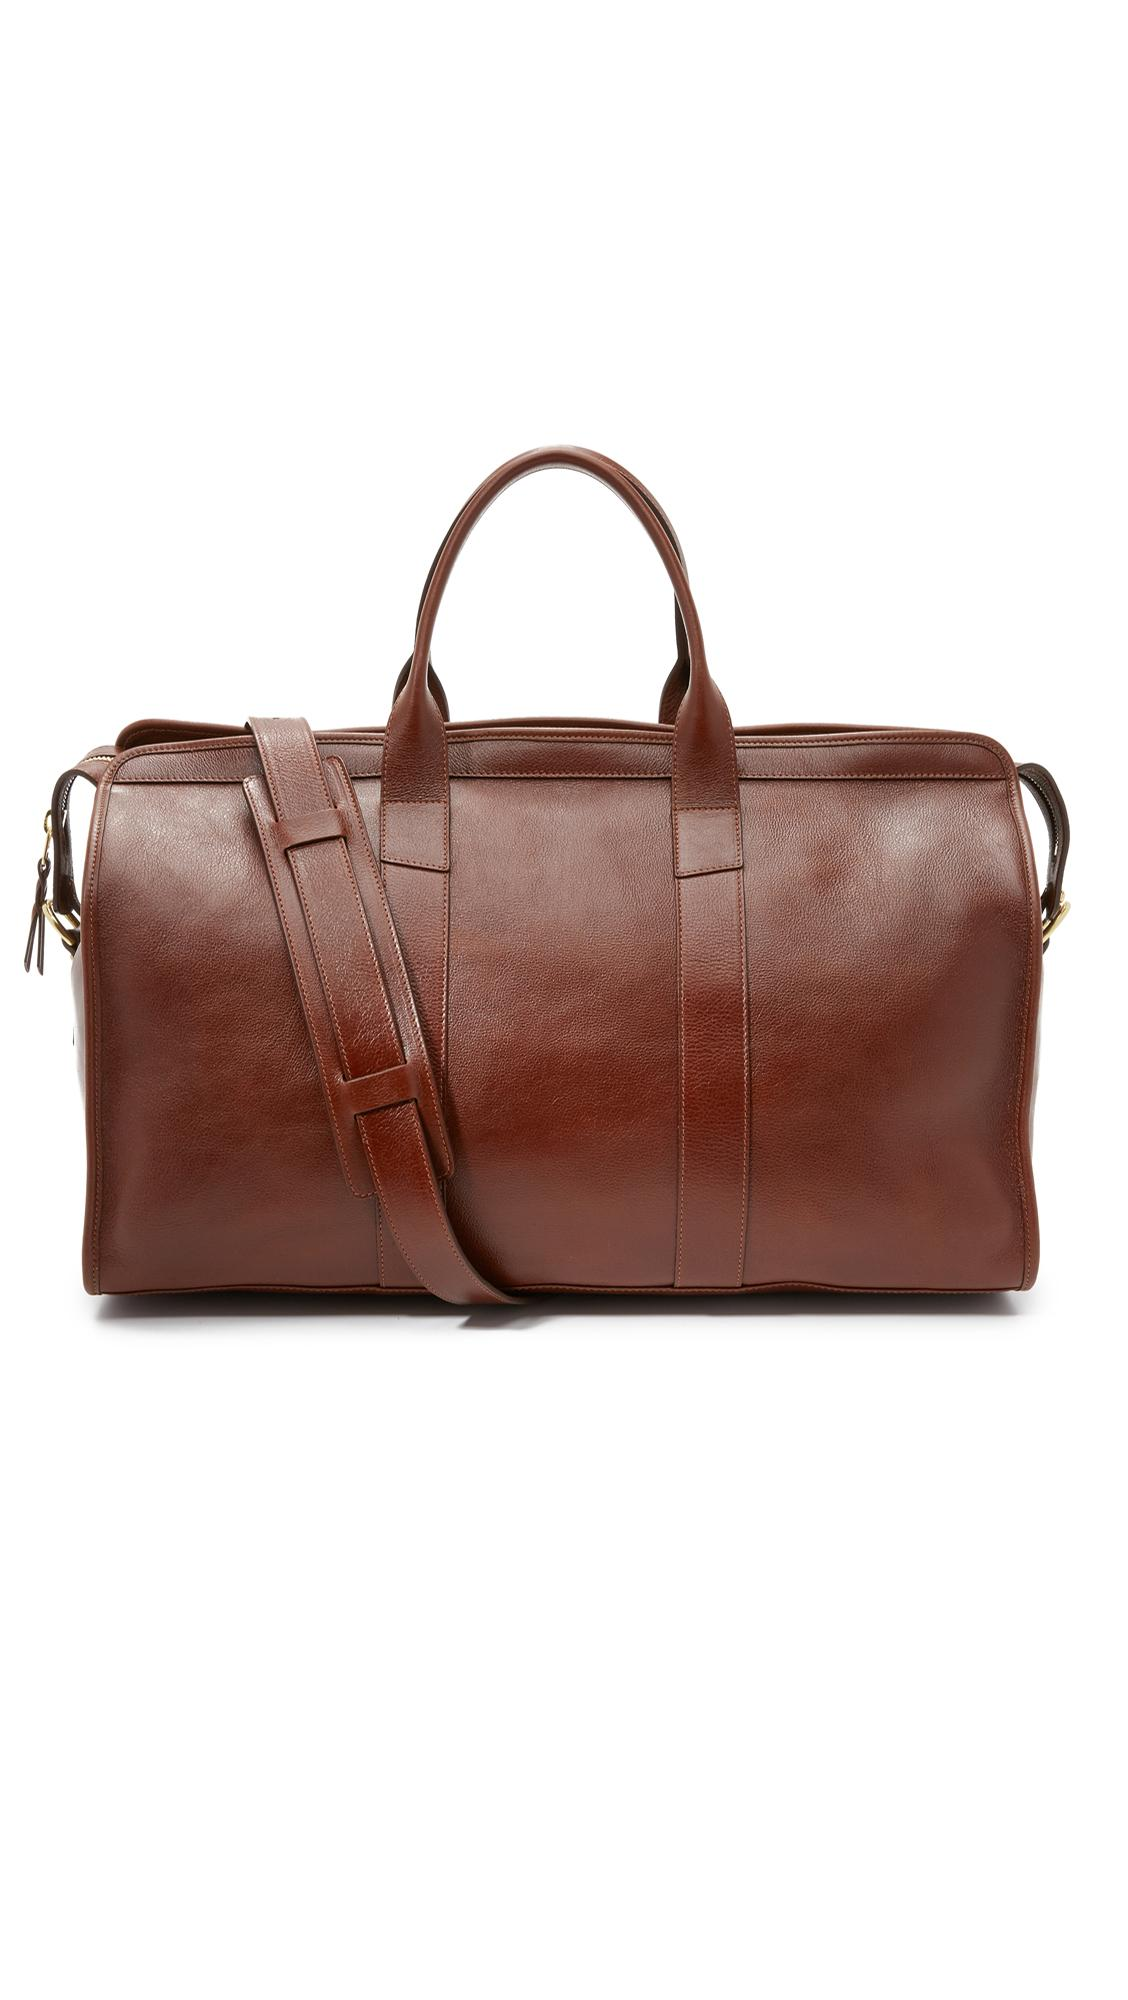 Lotuff leather Duffel Travel Bag With Pocket in Brown for ...